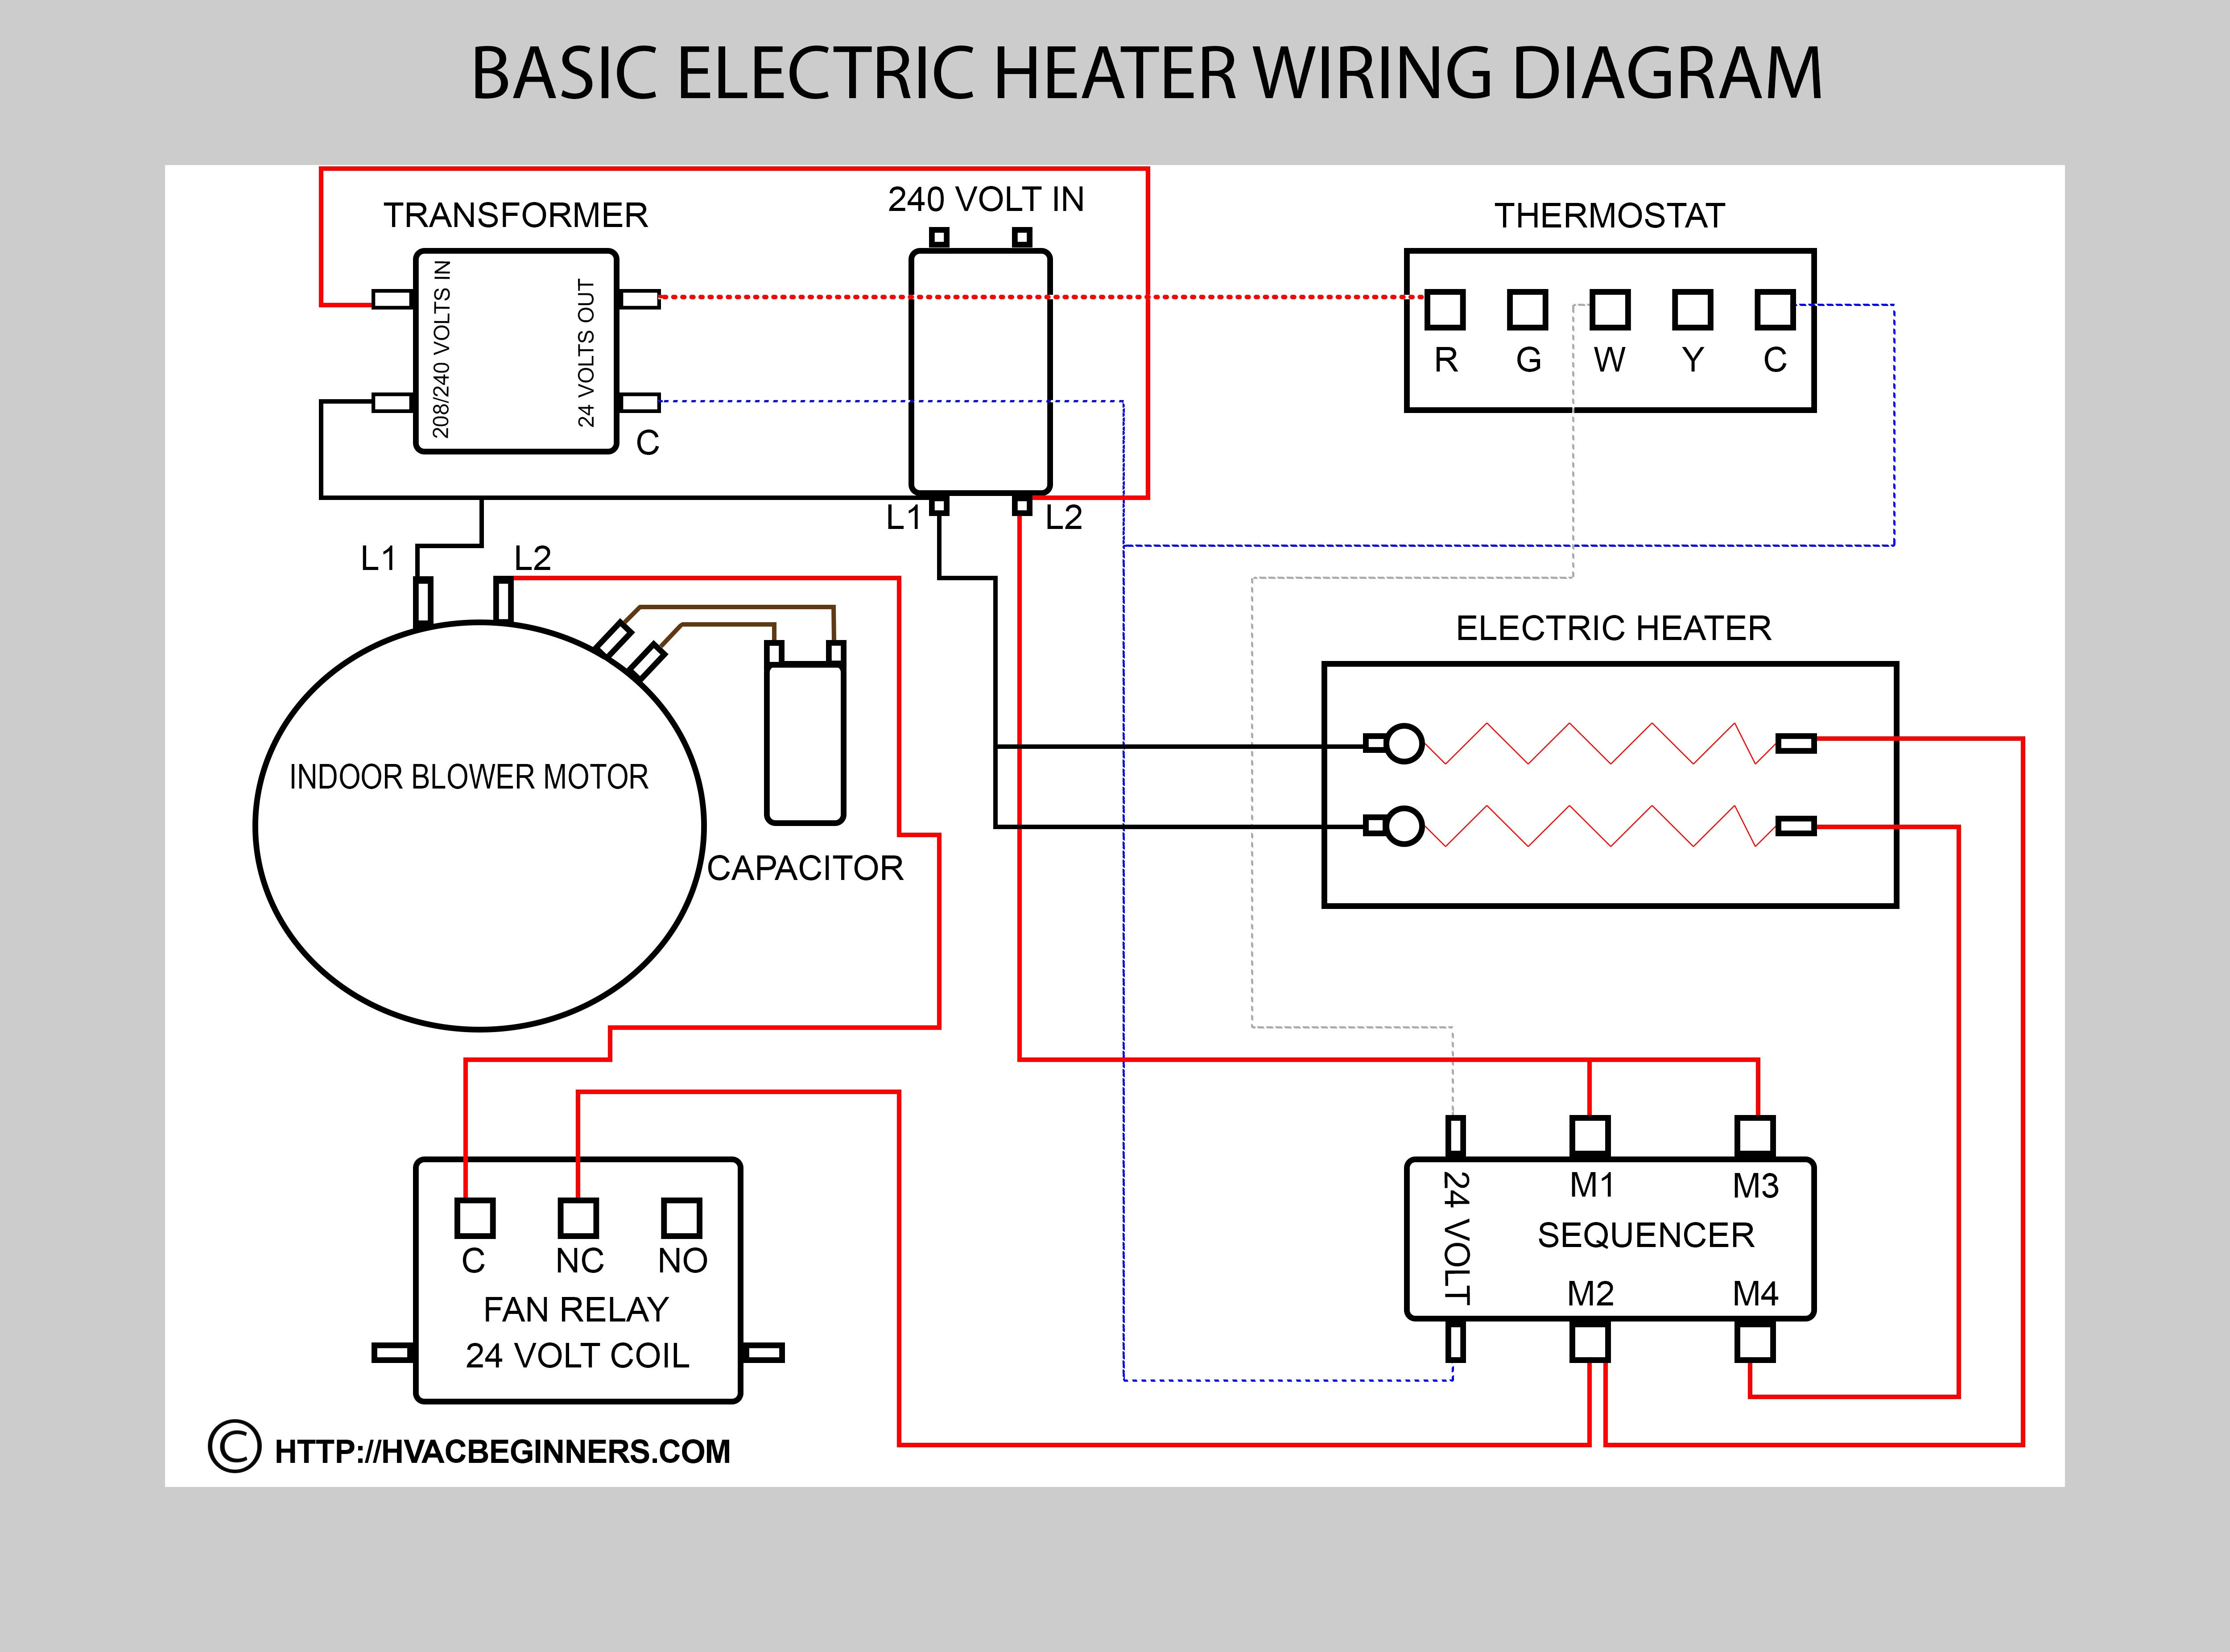 mitsubishi mini split system wiring diagram Collection-Wiring Diagram Ac Split Mitsubishi New Split System Air Conditioner Wiring Diagram Hvac Wire Central And 19-p